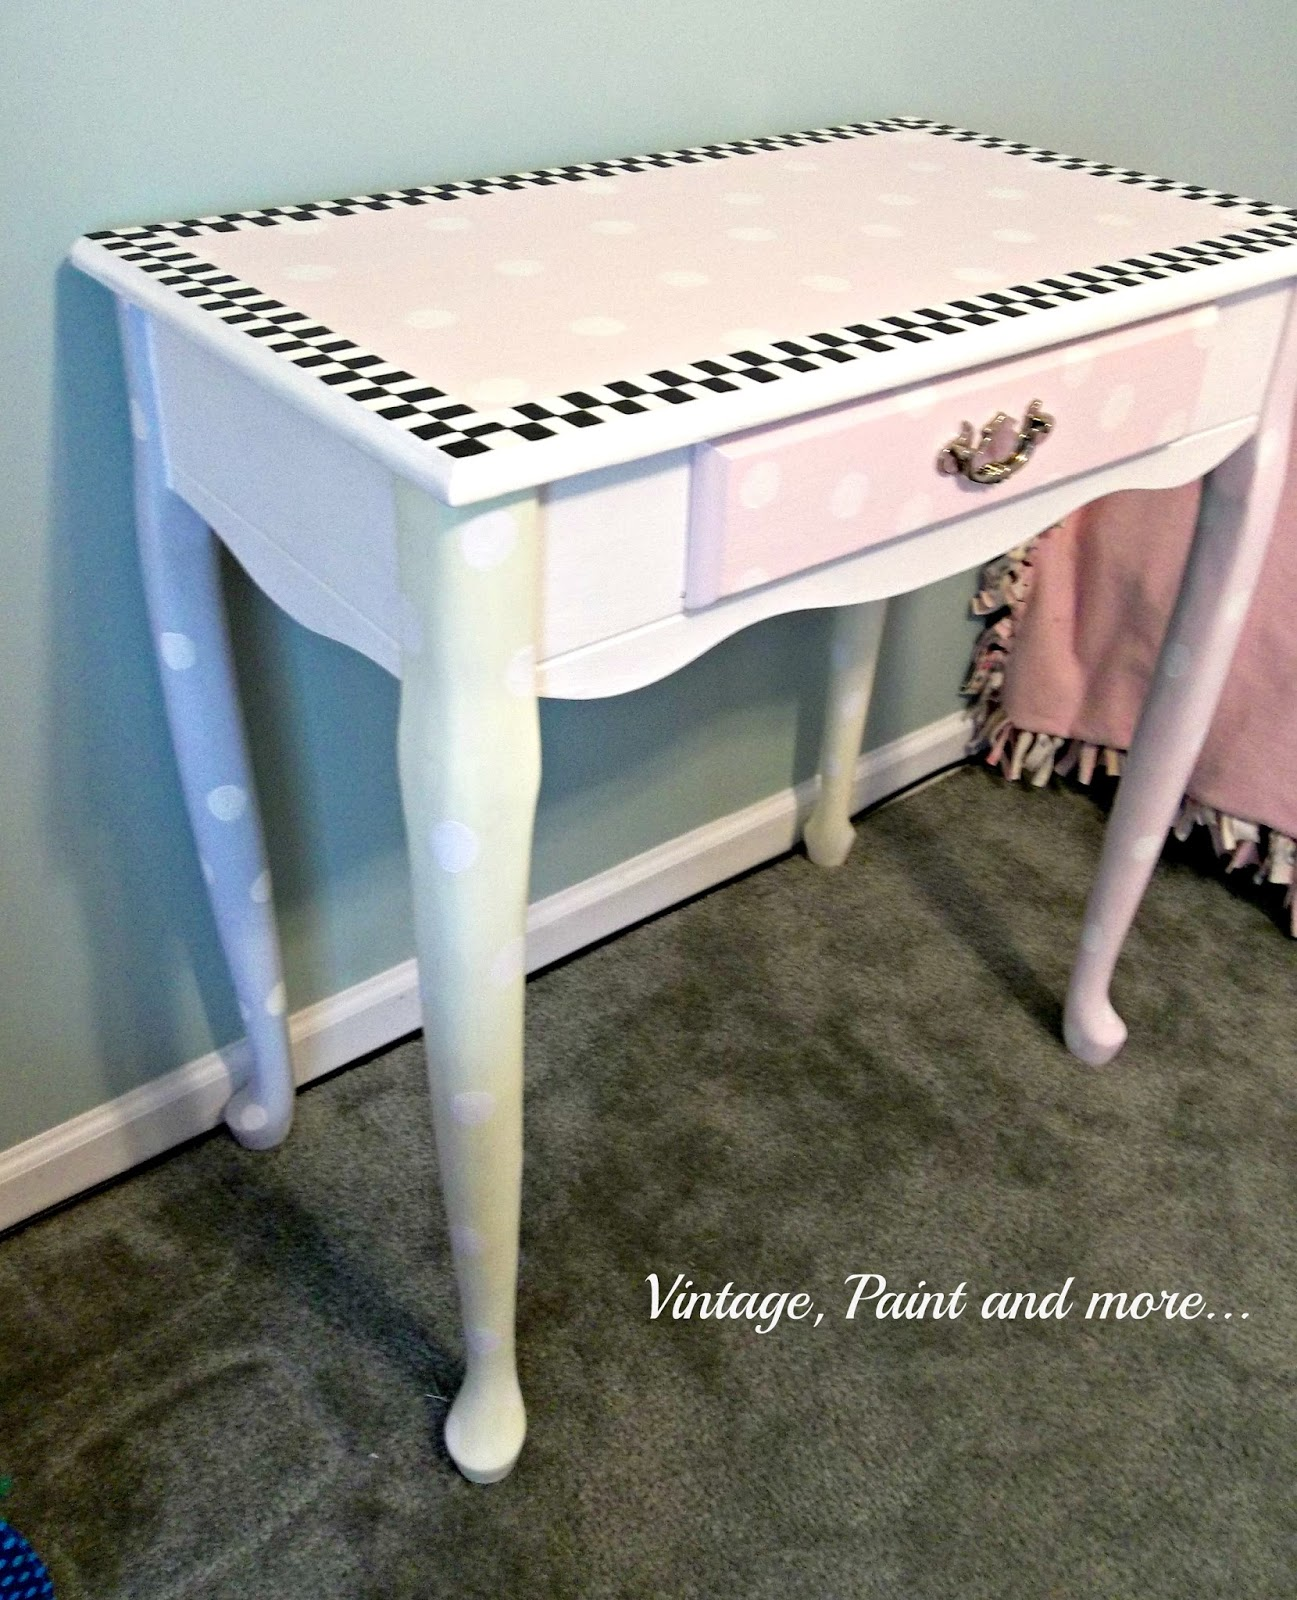 Vintage, Paint and more... thrifted desk decorative painted with polka dots and black and white checks